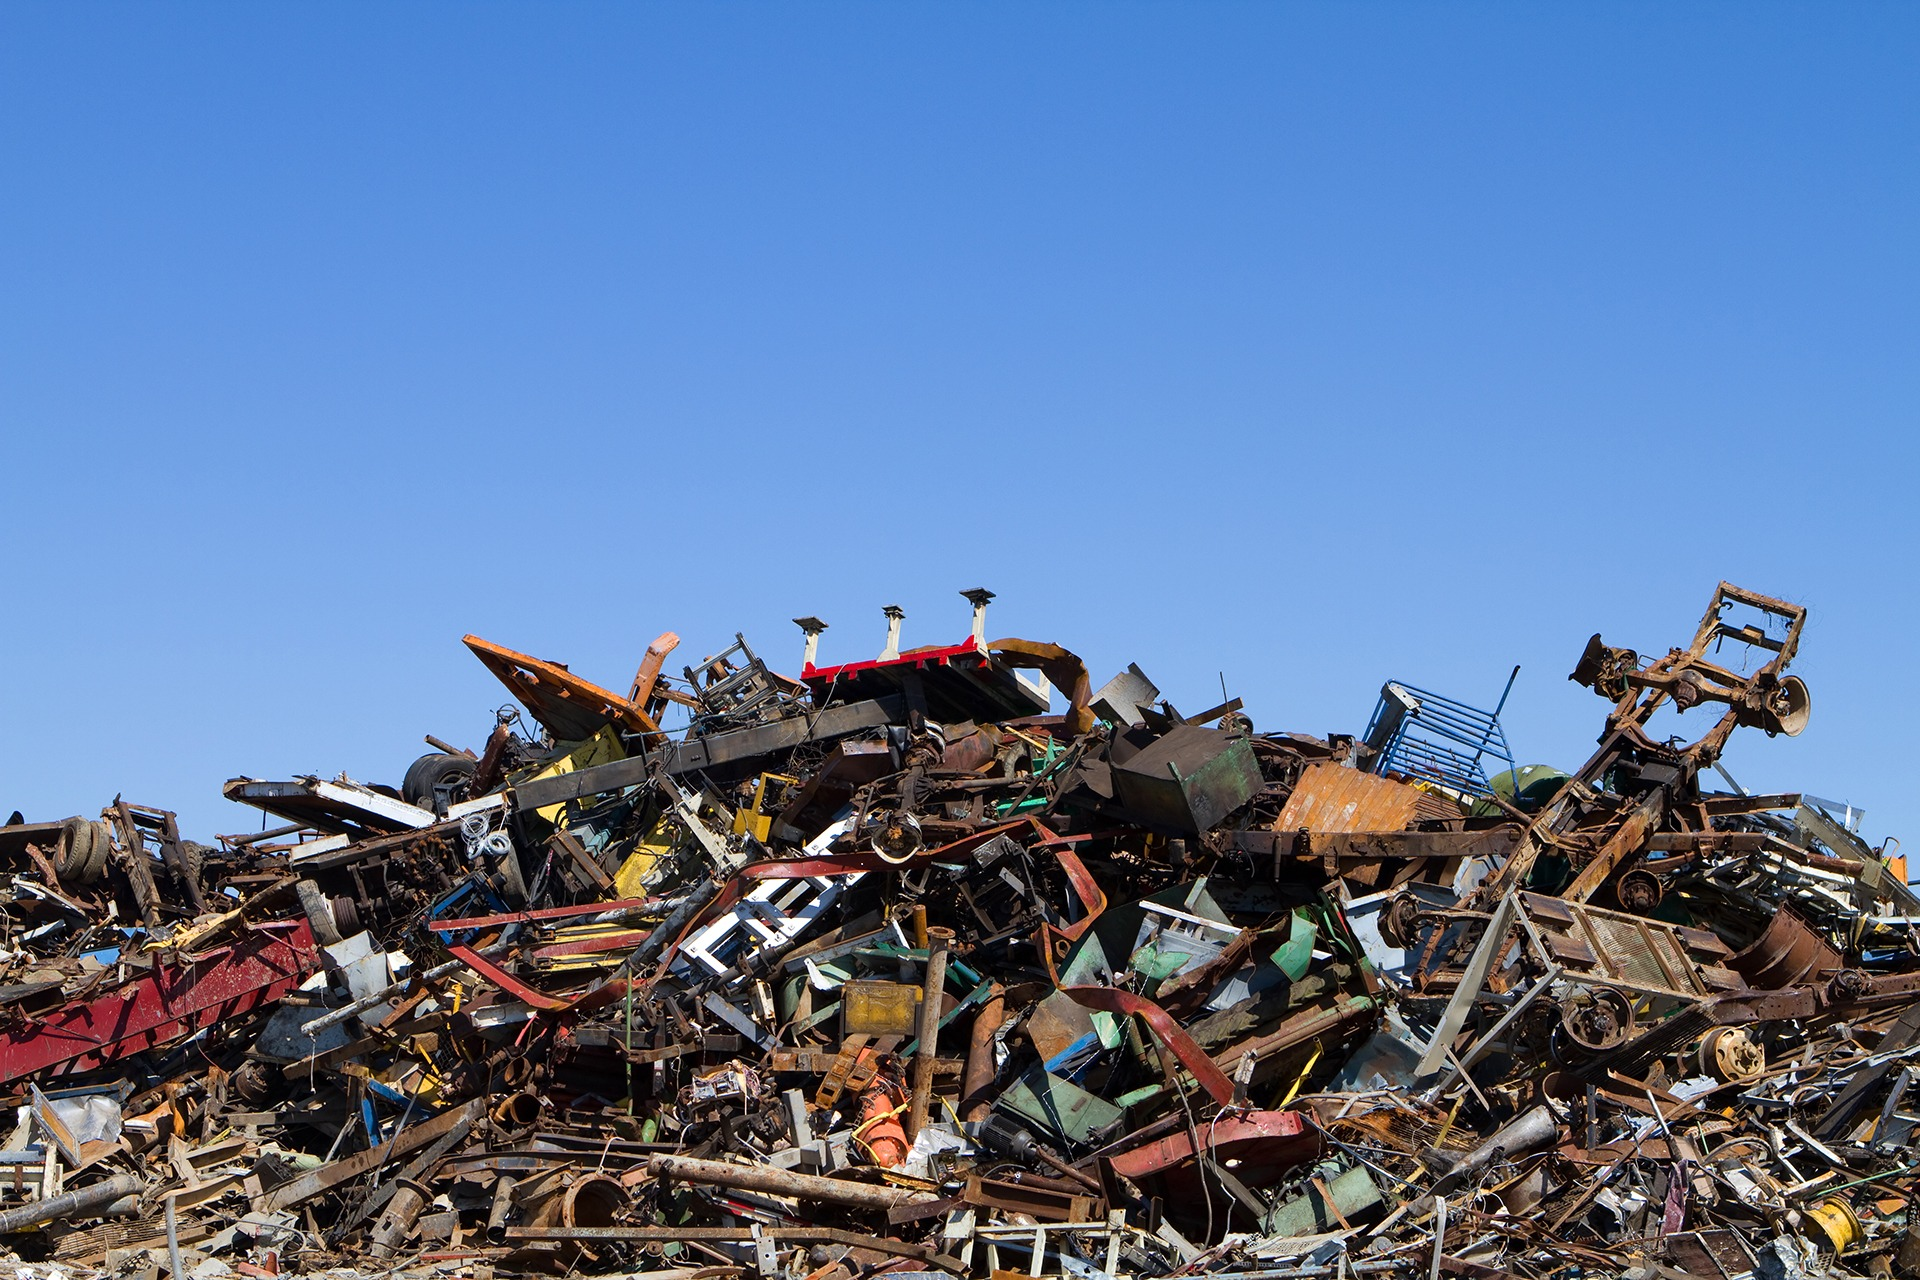 Scrap Metal Recycling Southampton